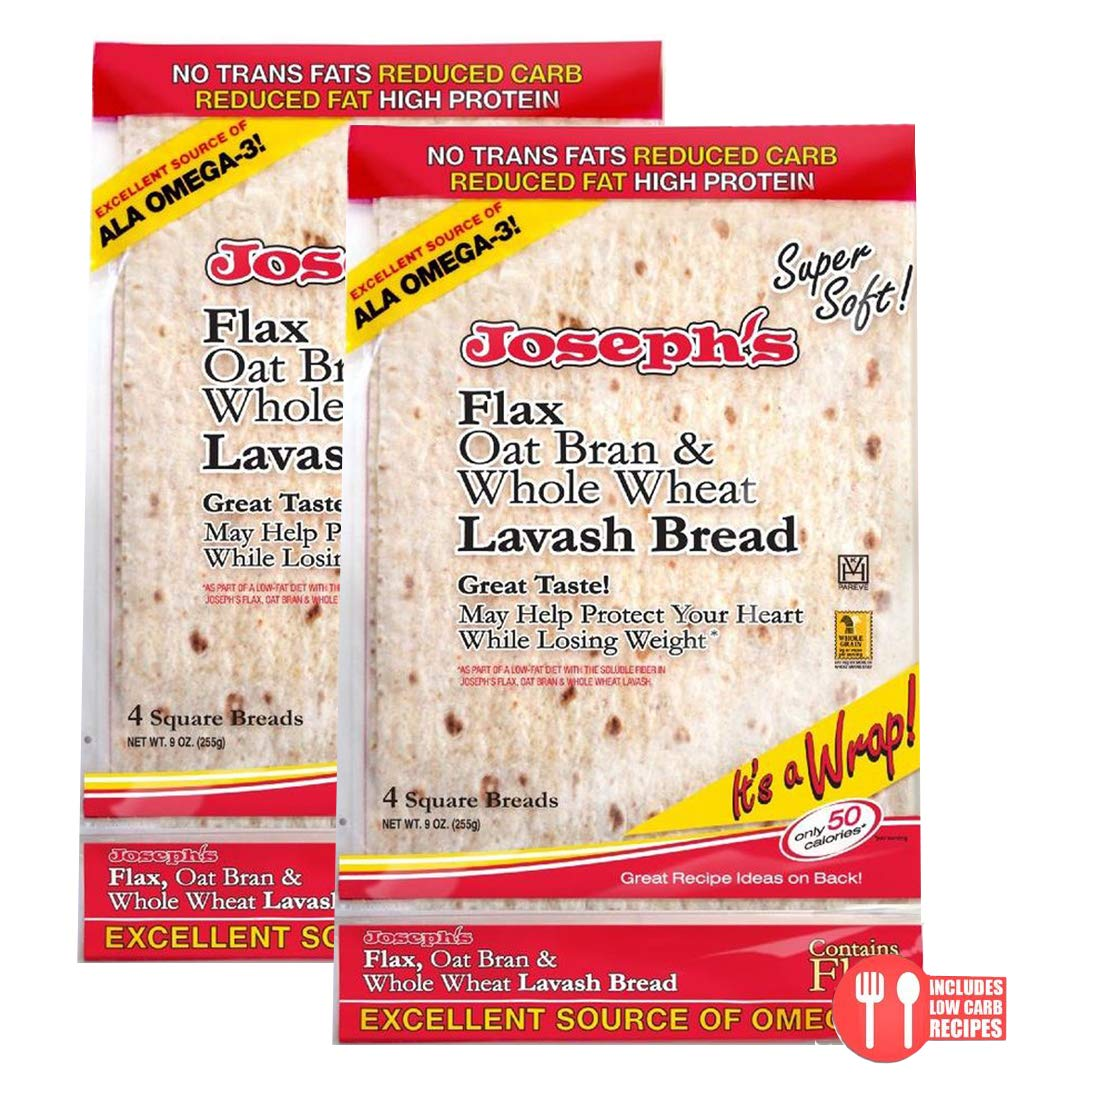 2 Pack Value: Joseph's Lavash Bread Flax Oat Bran & Whole Wheat Reduced Carb, 8 Squares